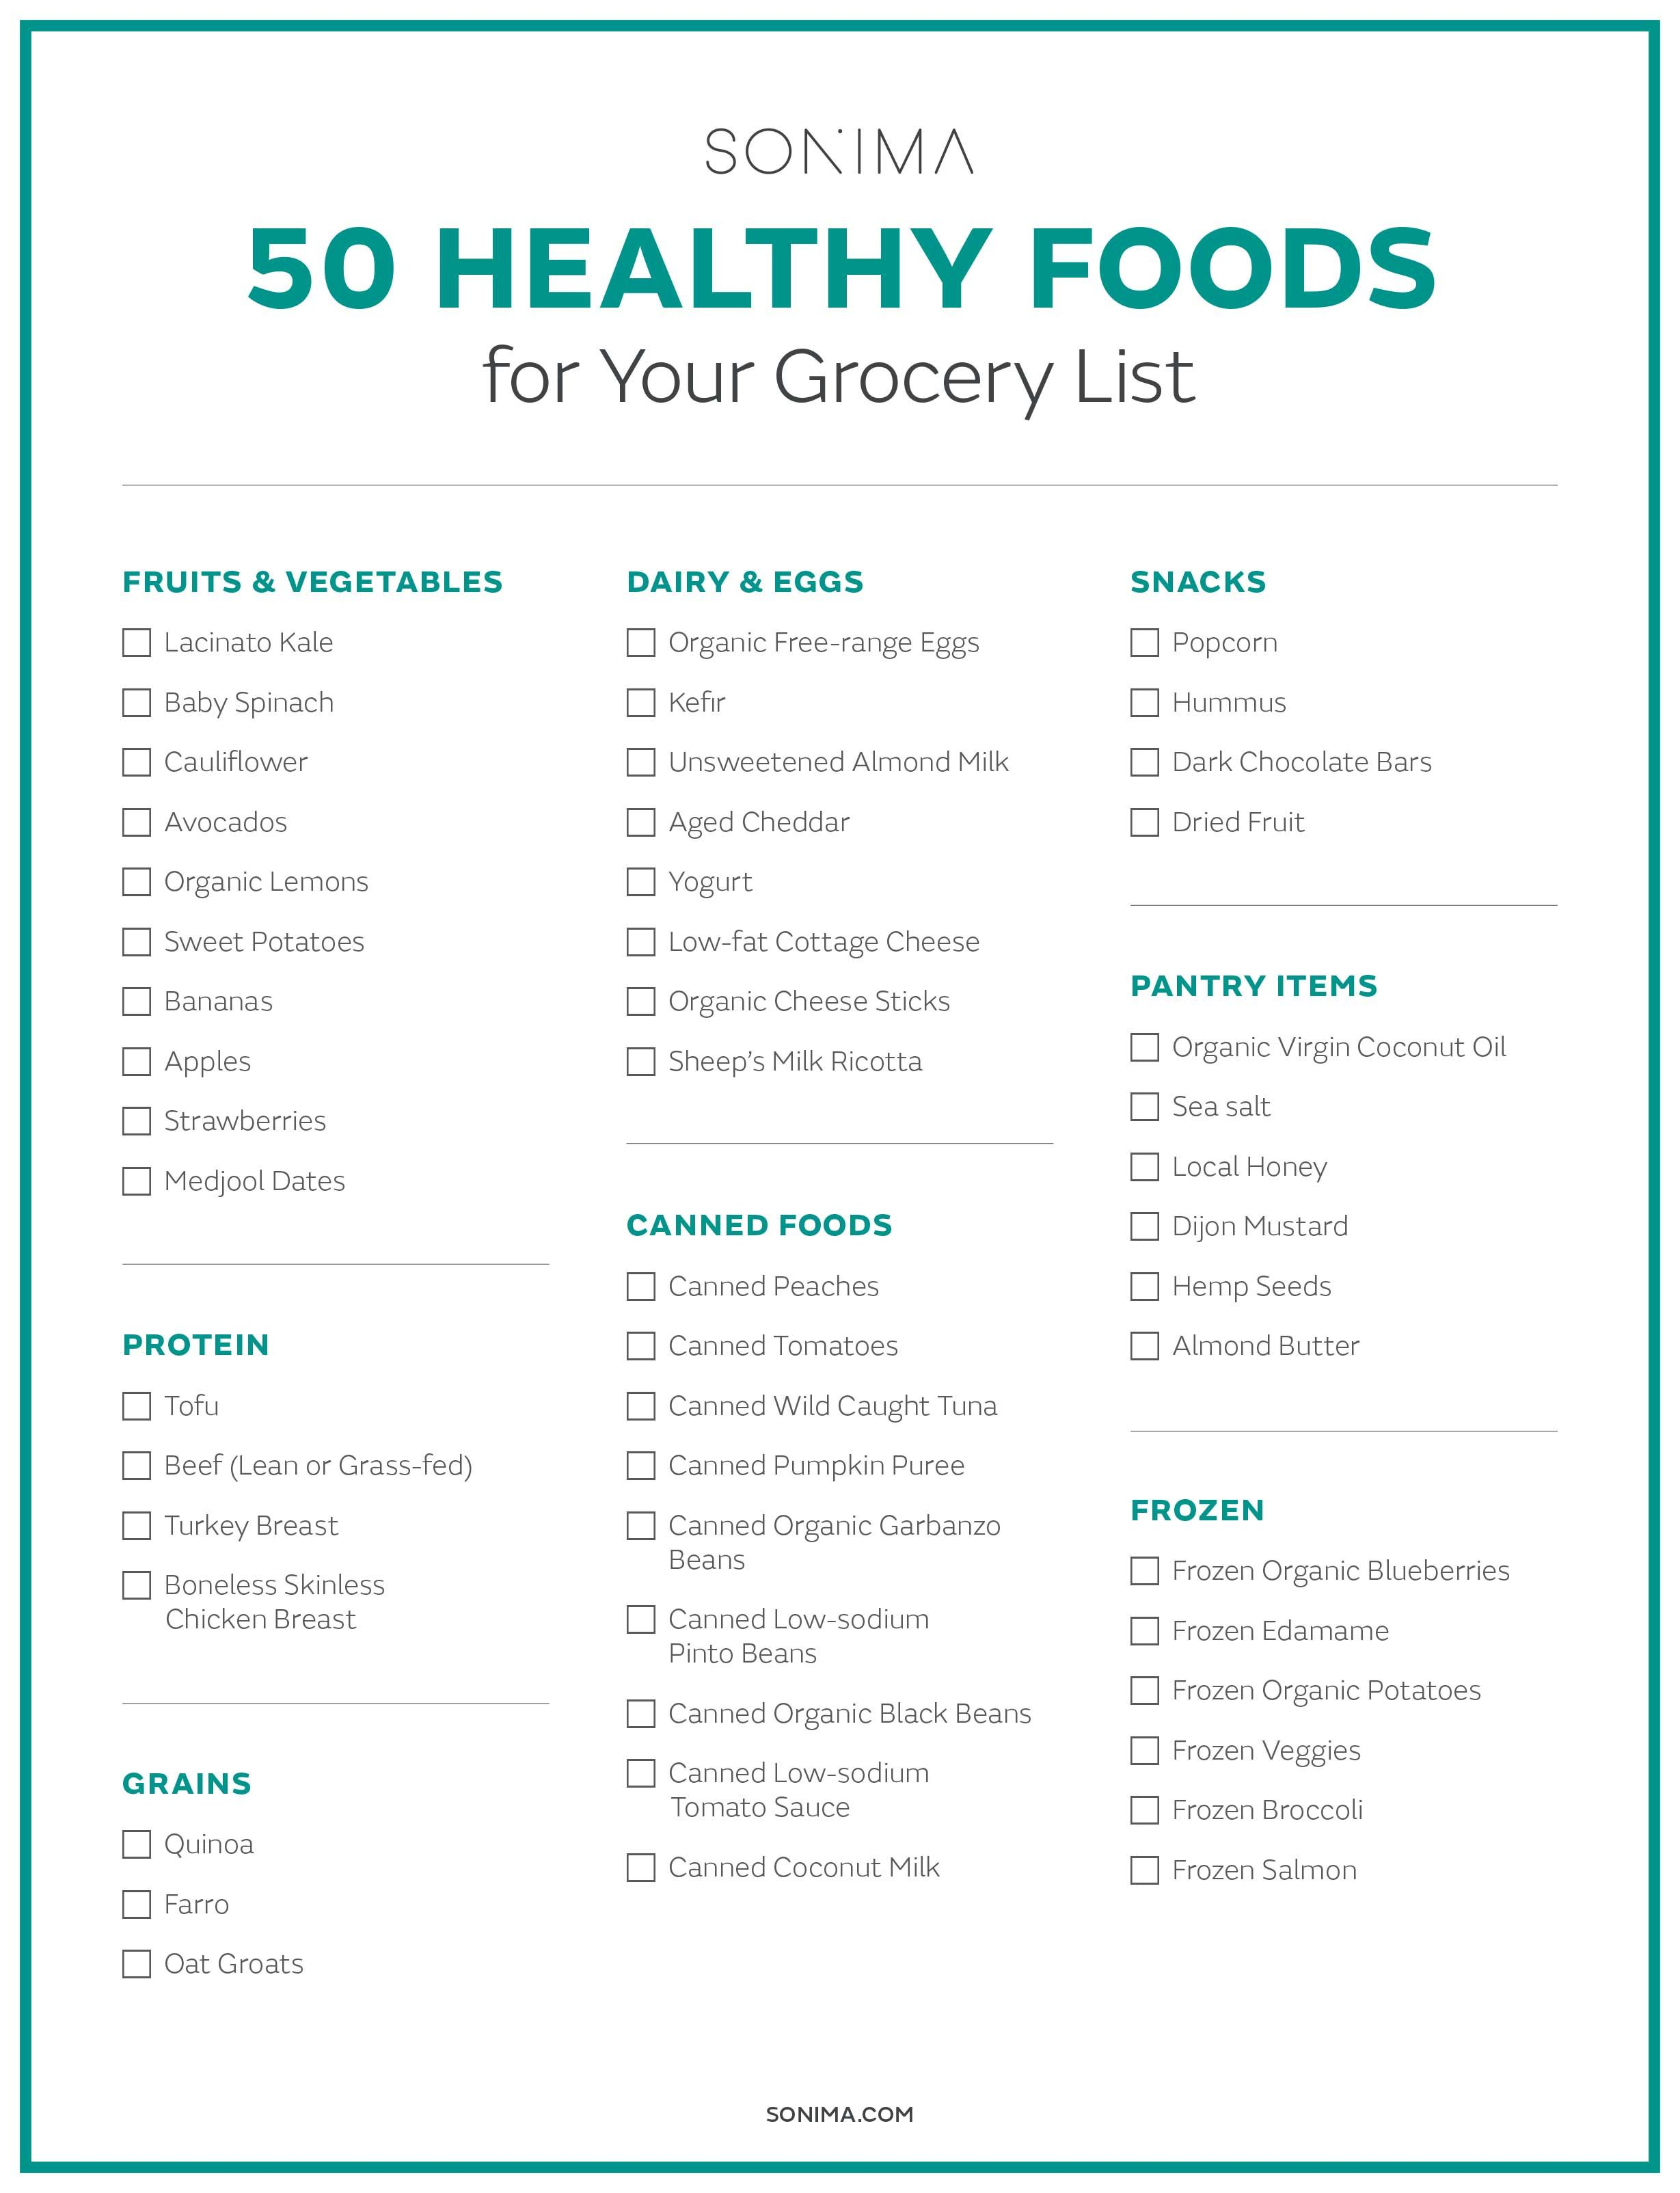 50 Healthy Foods To Add To Your Grocery List Health News